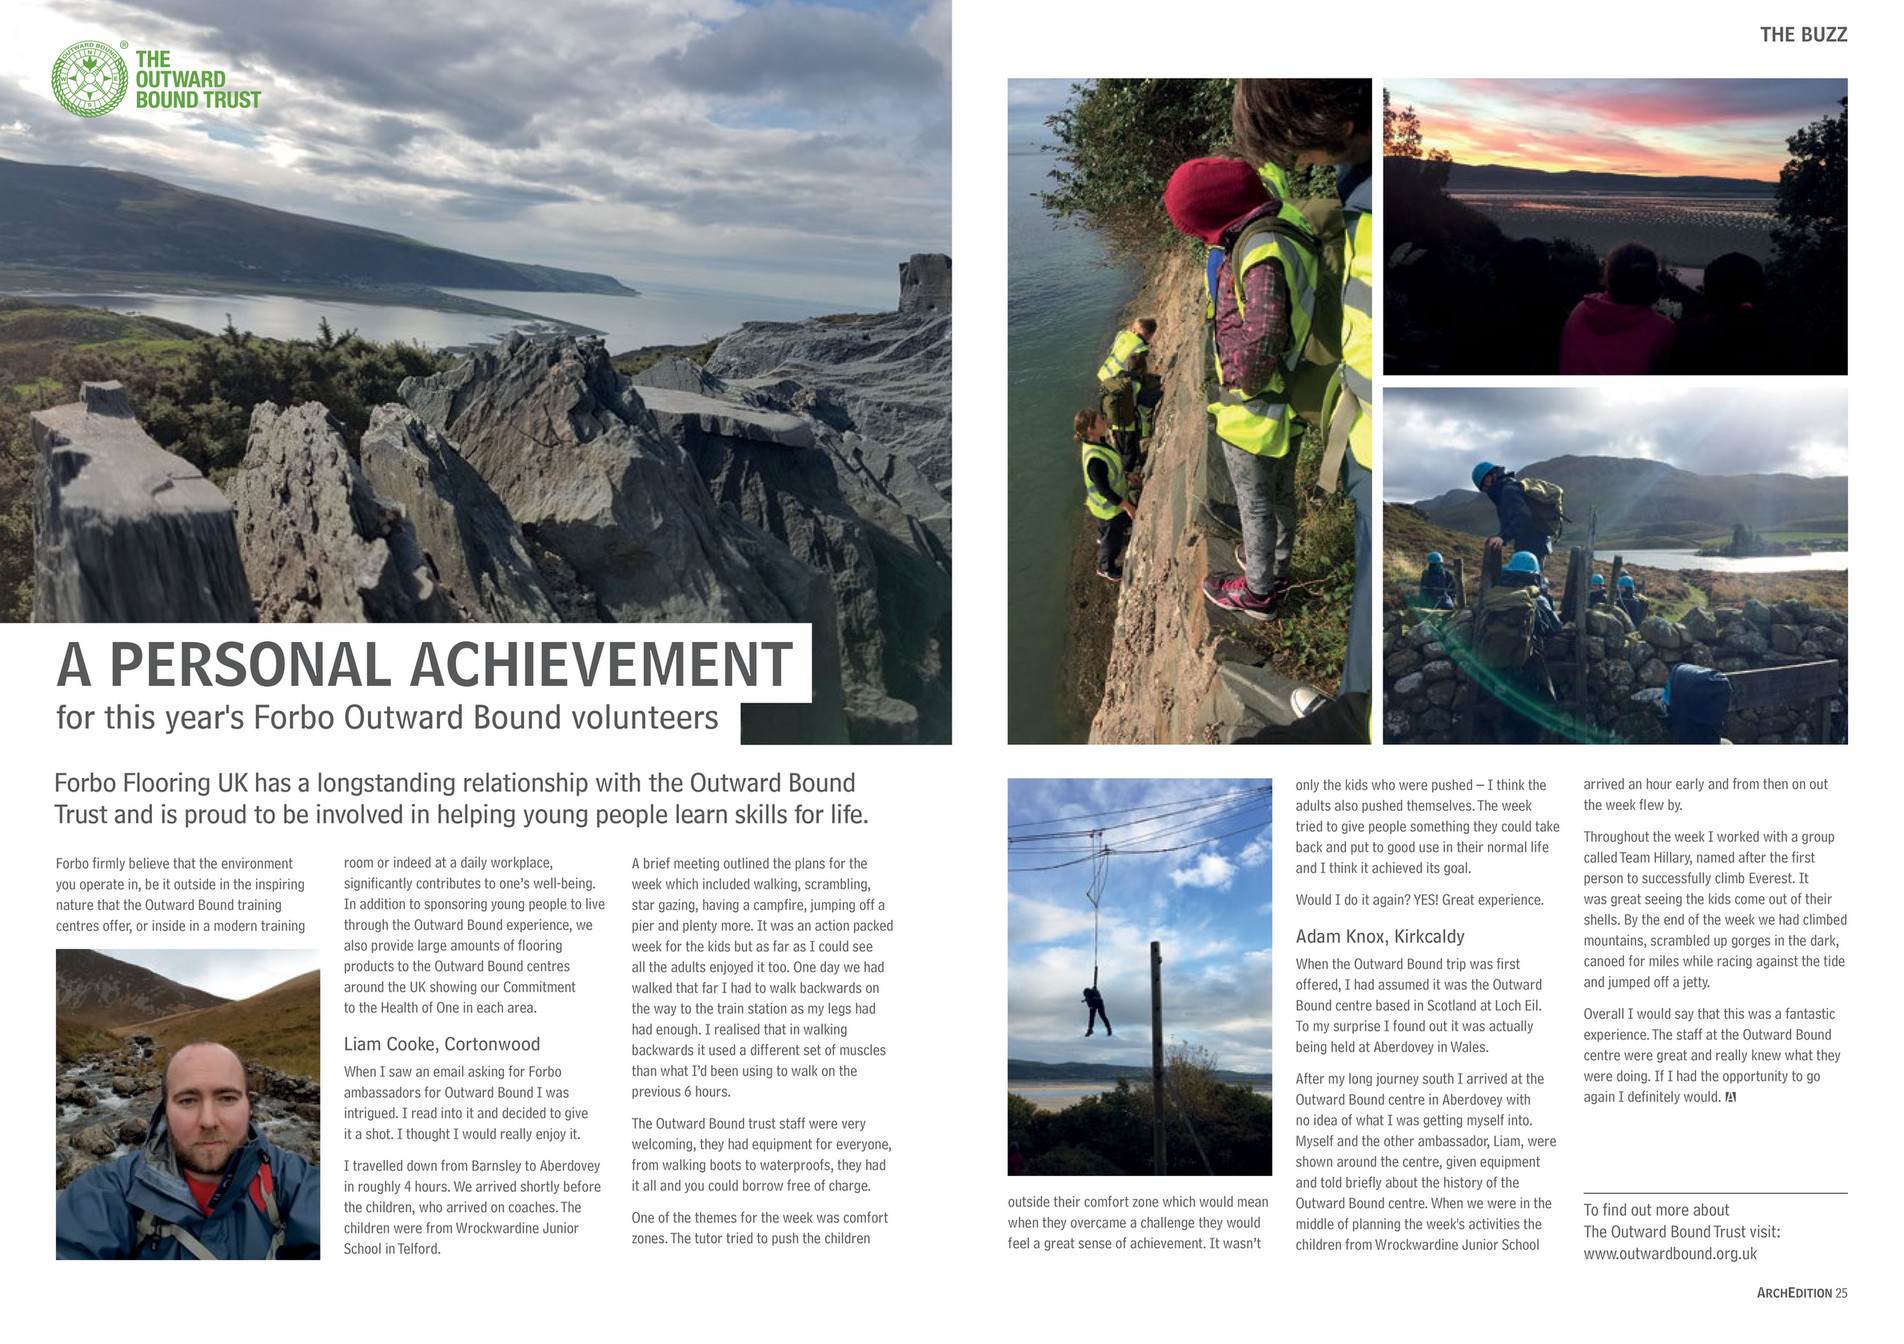 End How To Make An Email To Find Out More About The Outward Bound  Trust Visit: Outwardbound Archedition 25